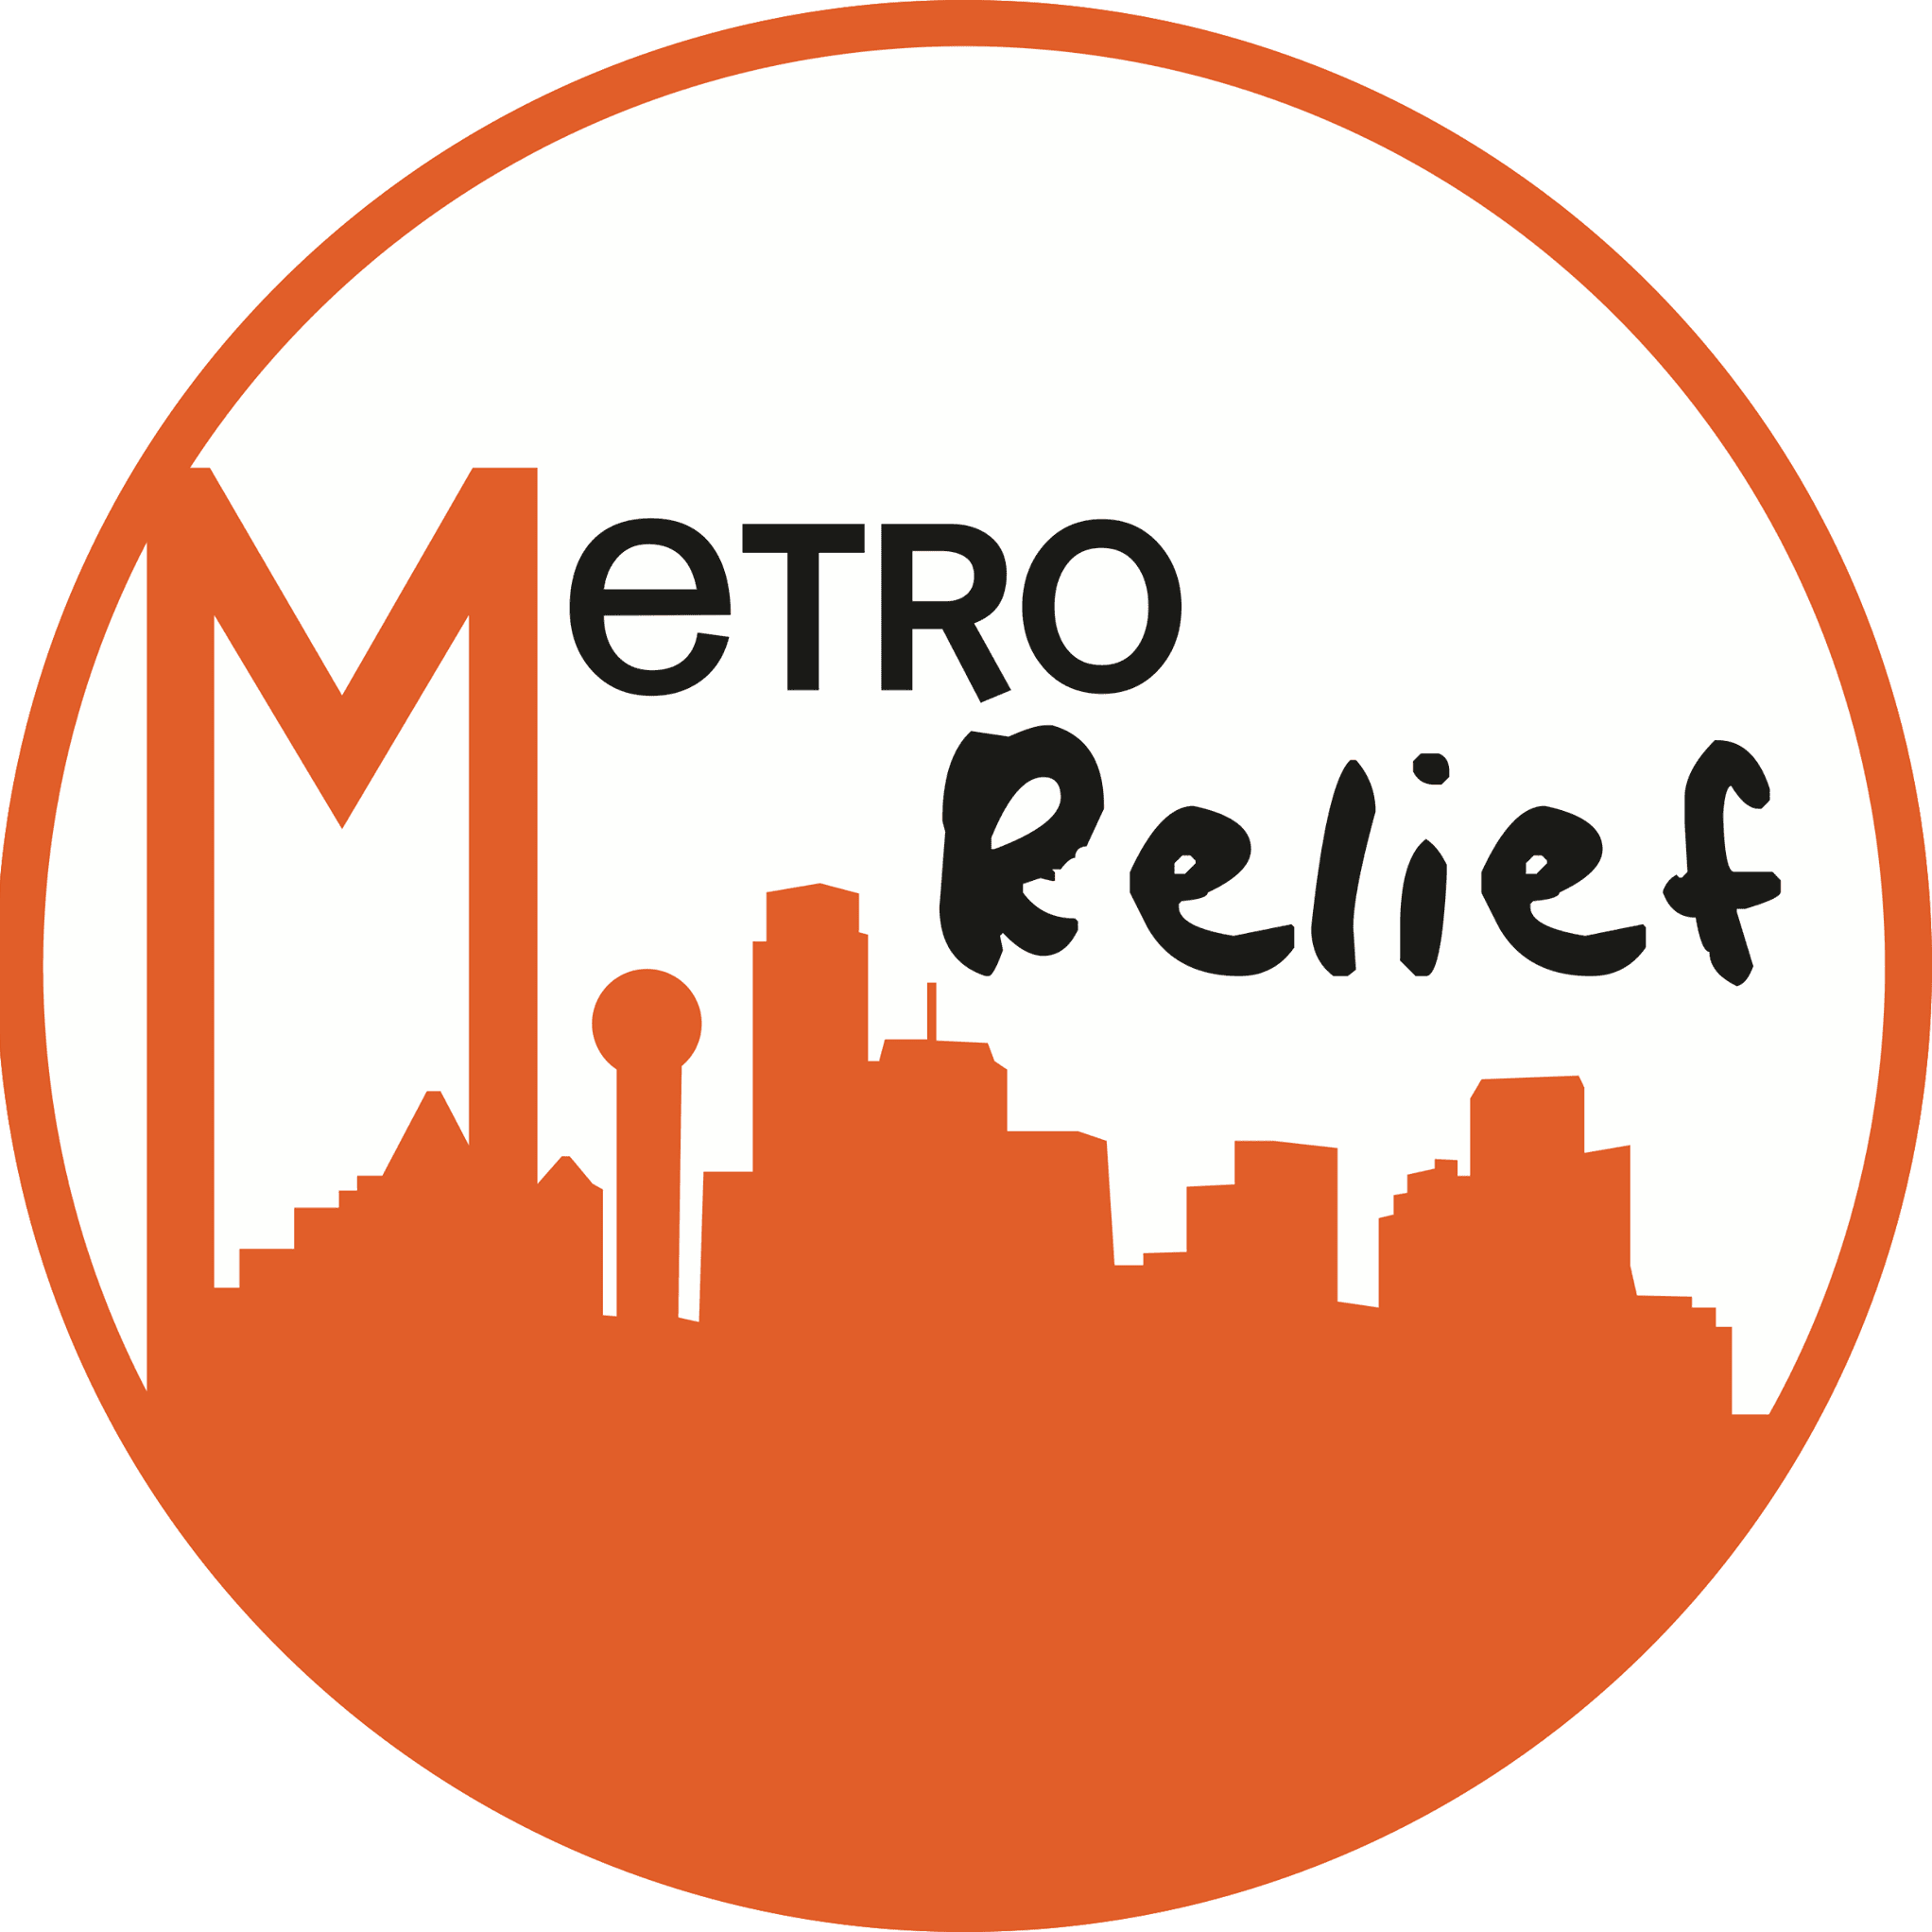 The Storehouse of Metro Relief